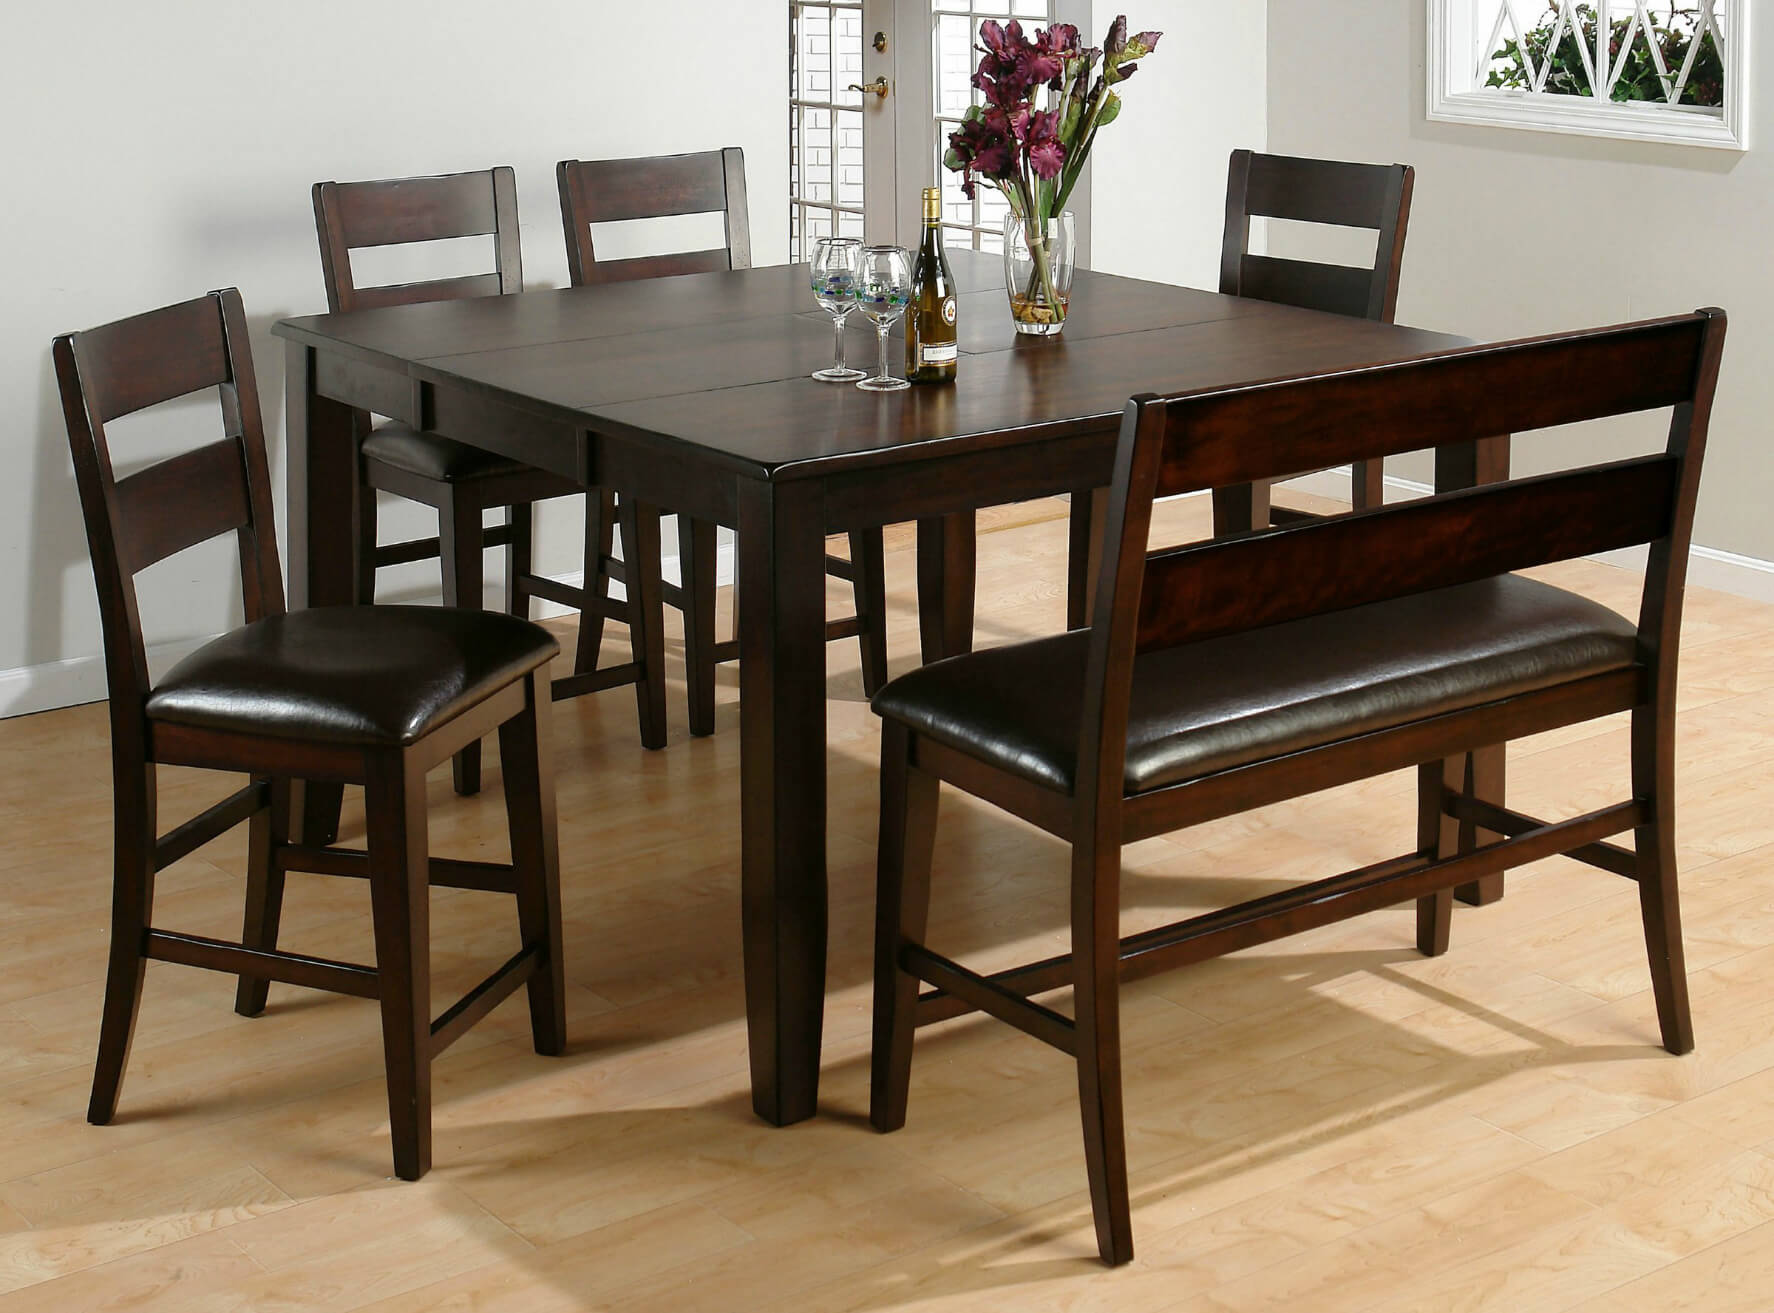 Dining Table With Bench And Chairs 26 Big And Small Dining Room Sets With Bench Seating